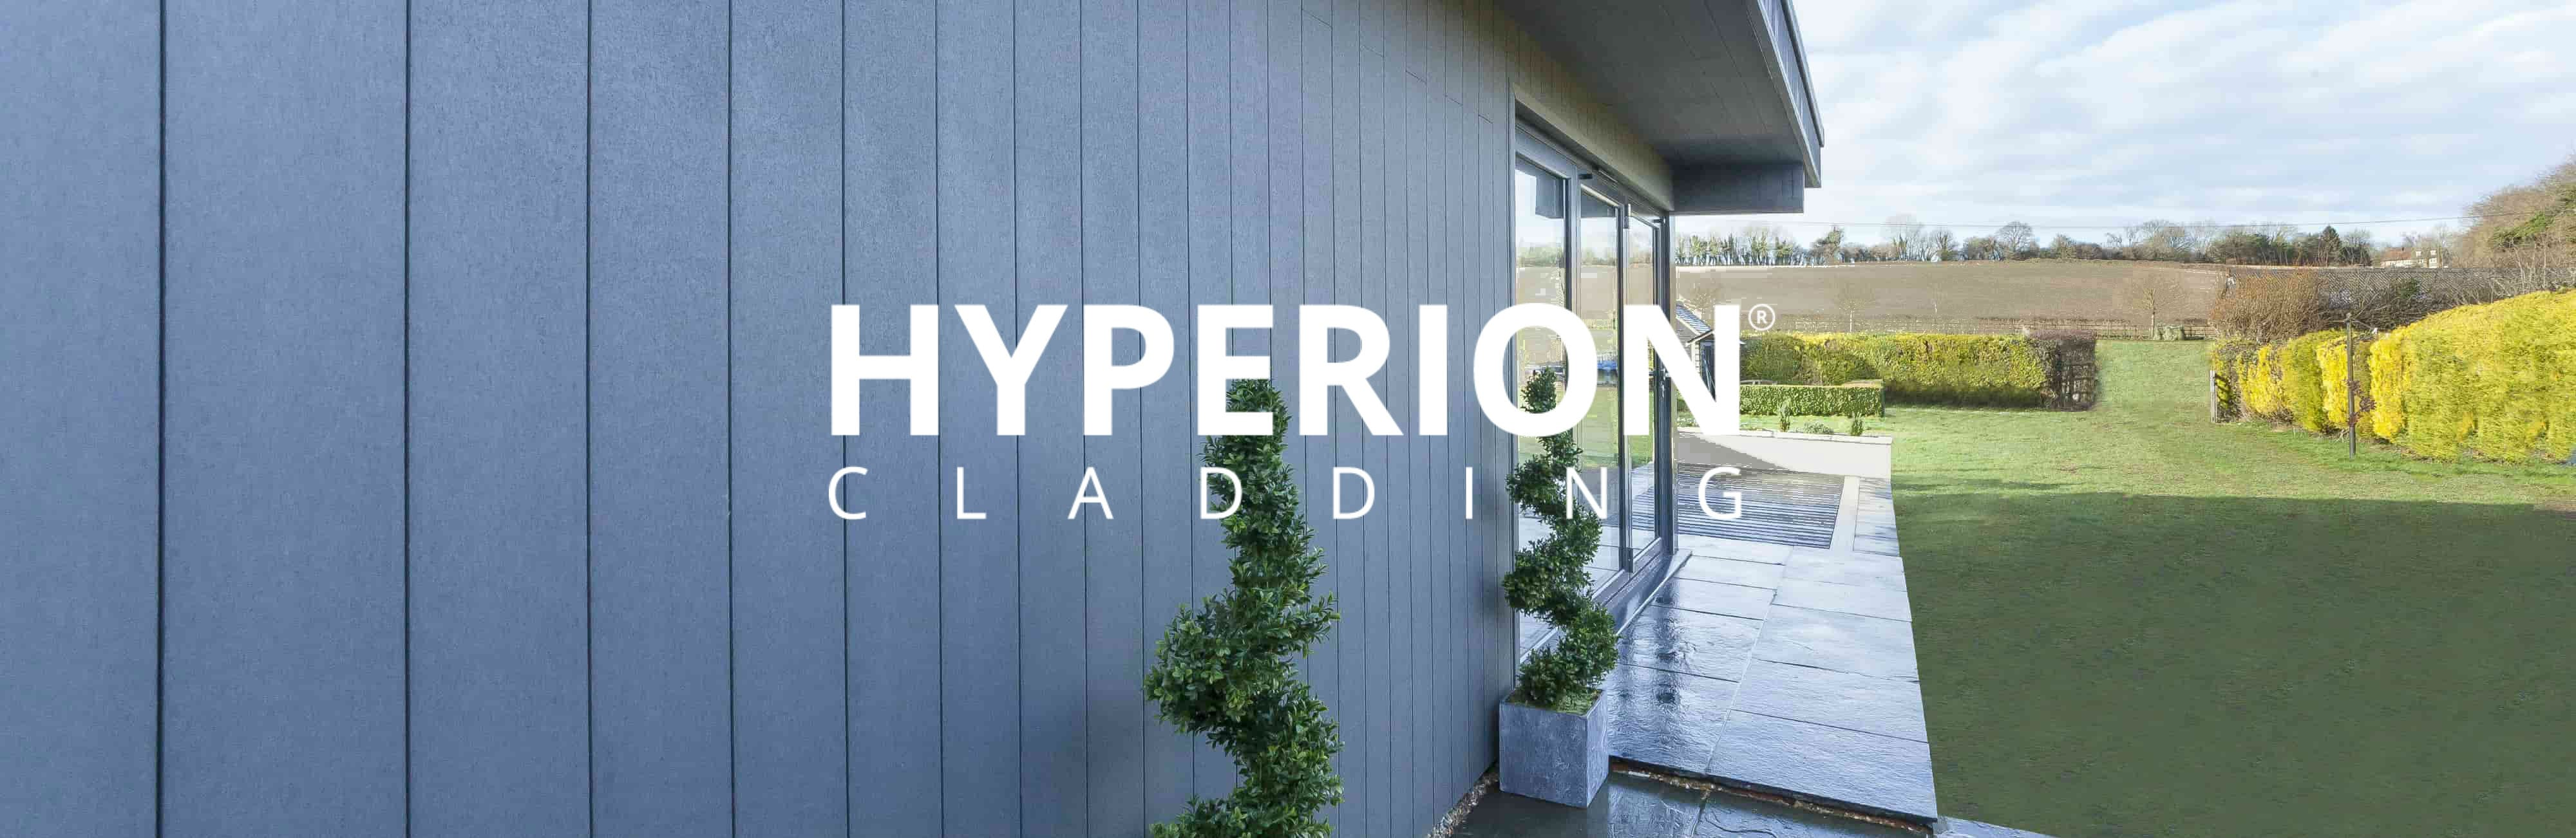 hyperion composite cladding